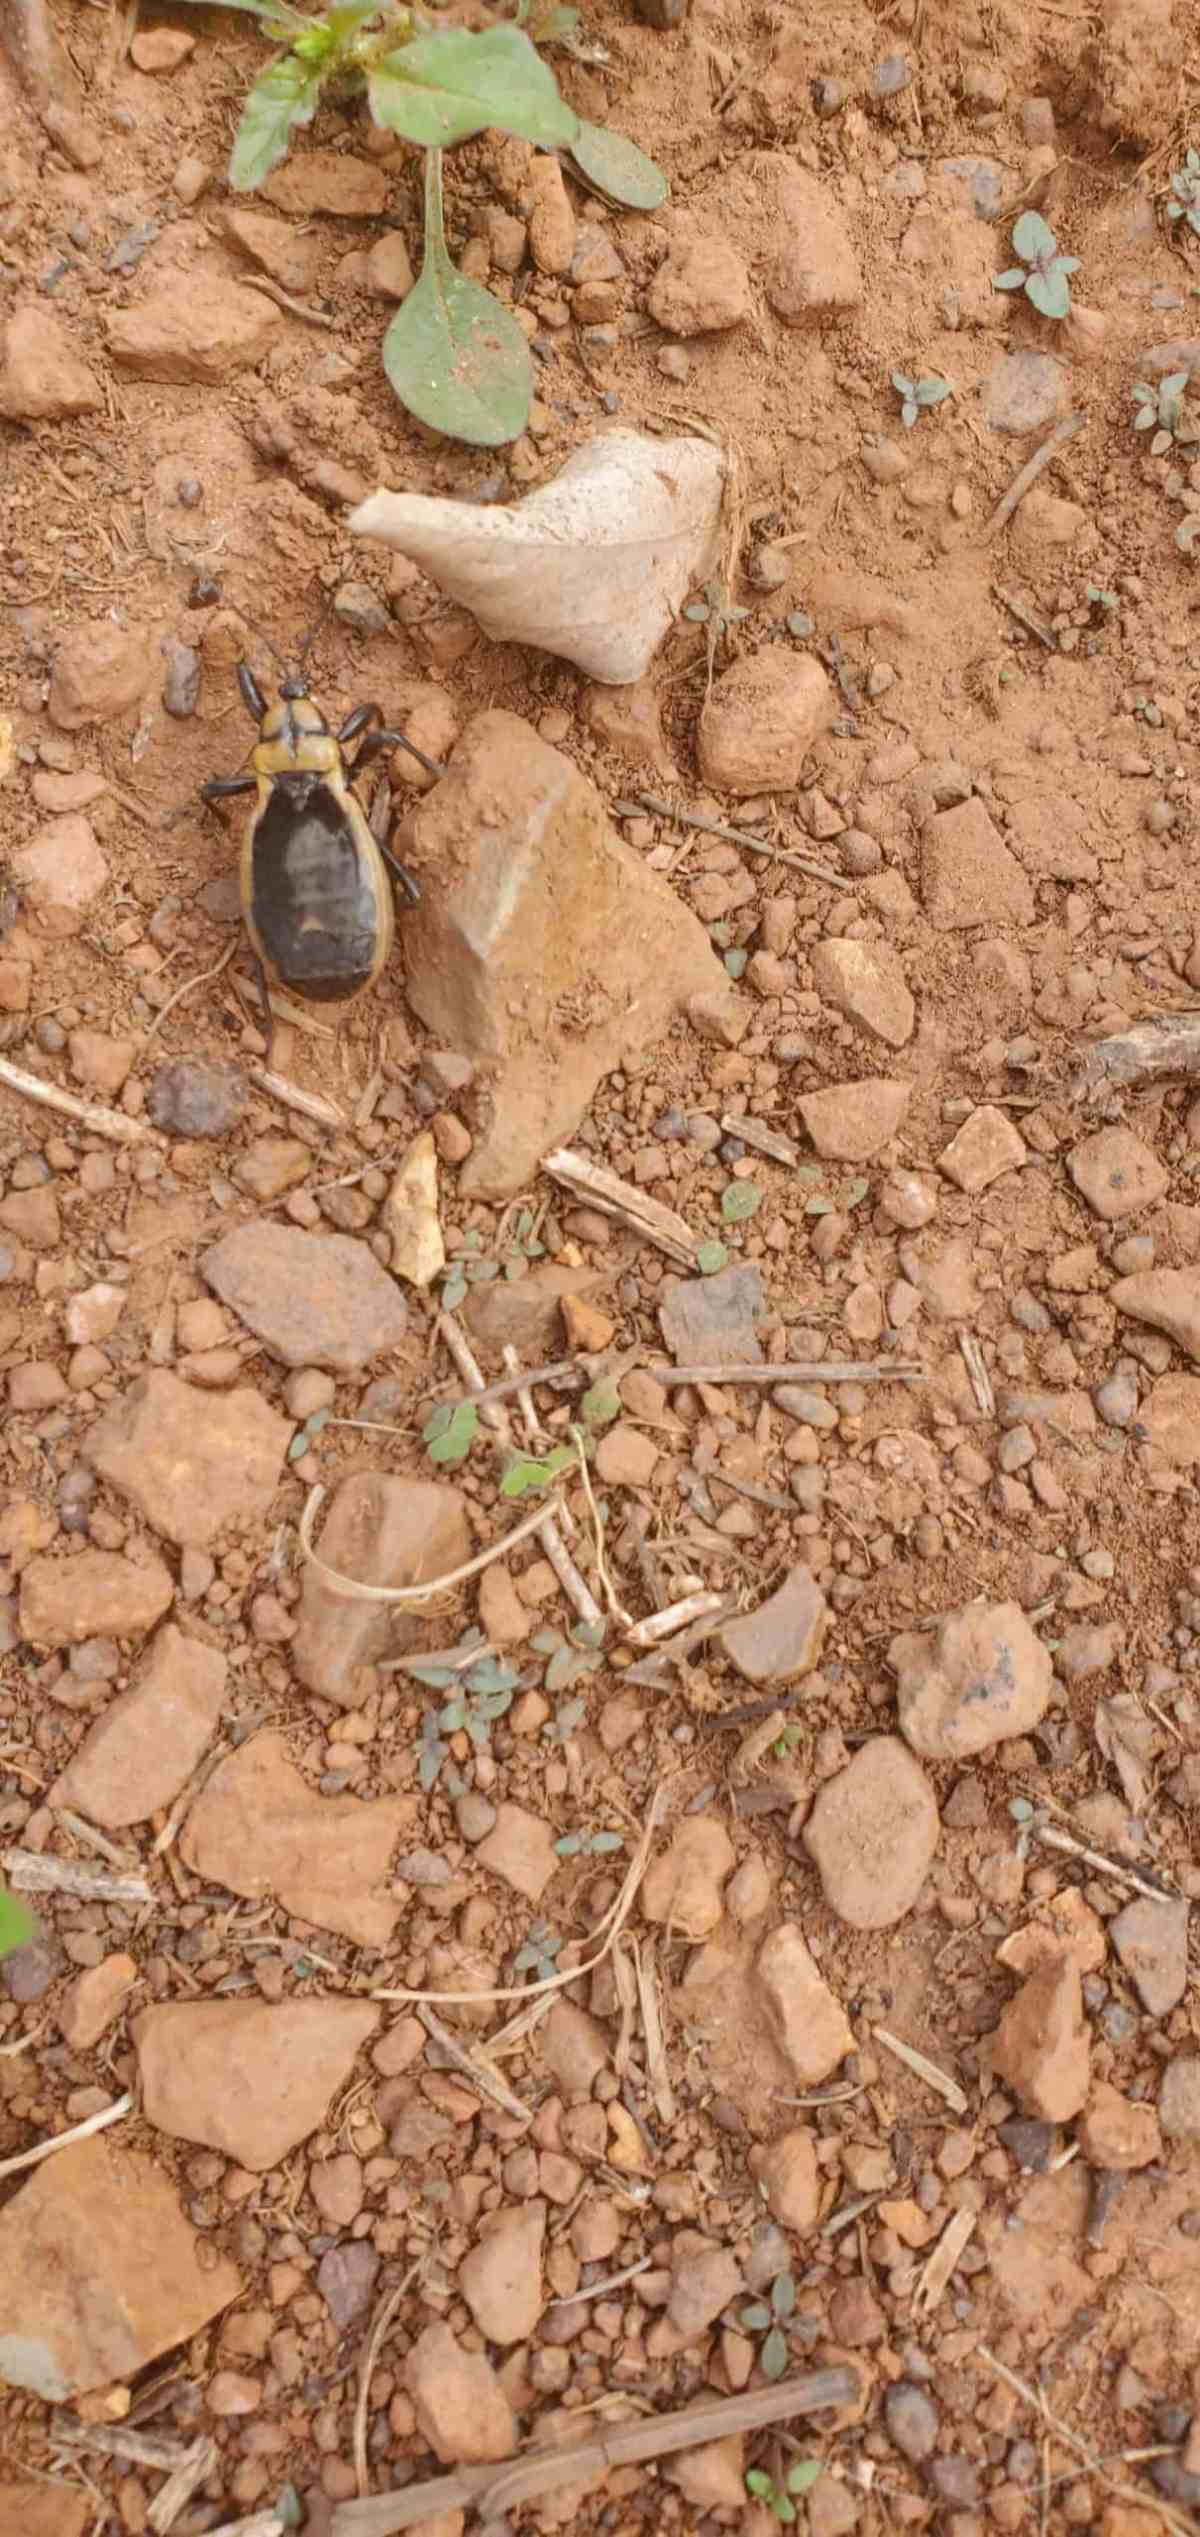 photo of a beetle in vegetable garden